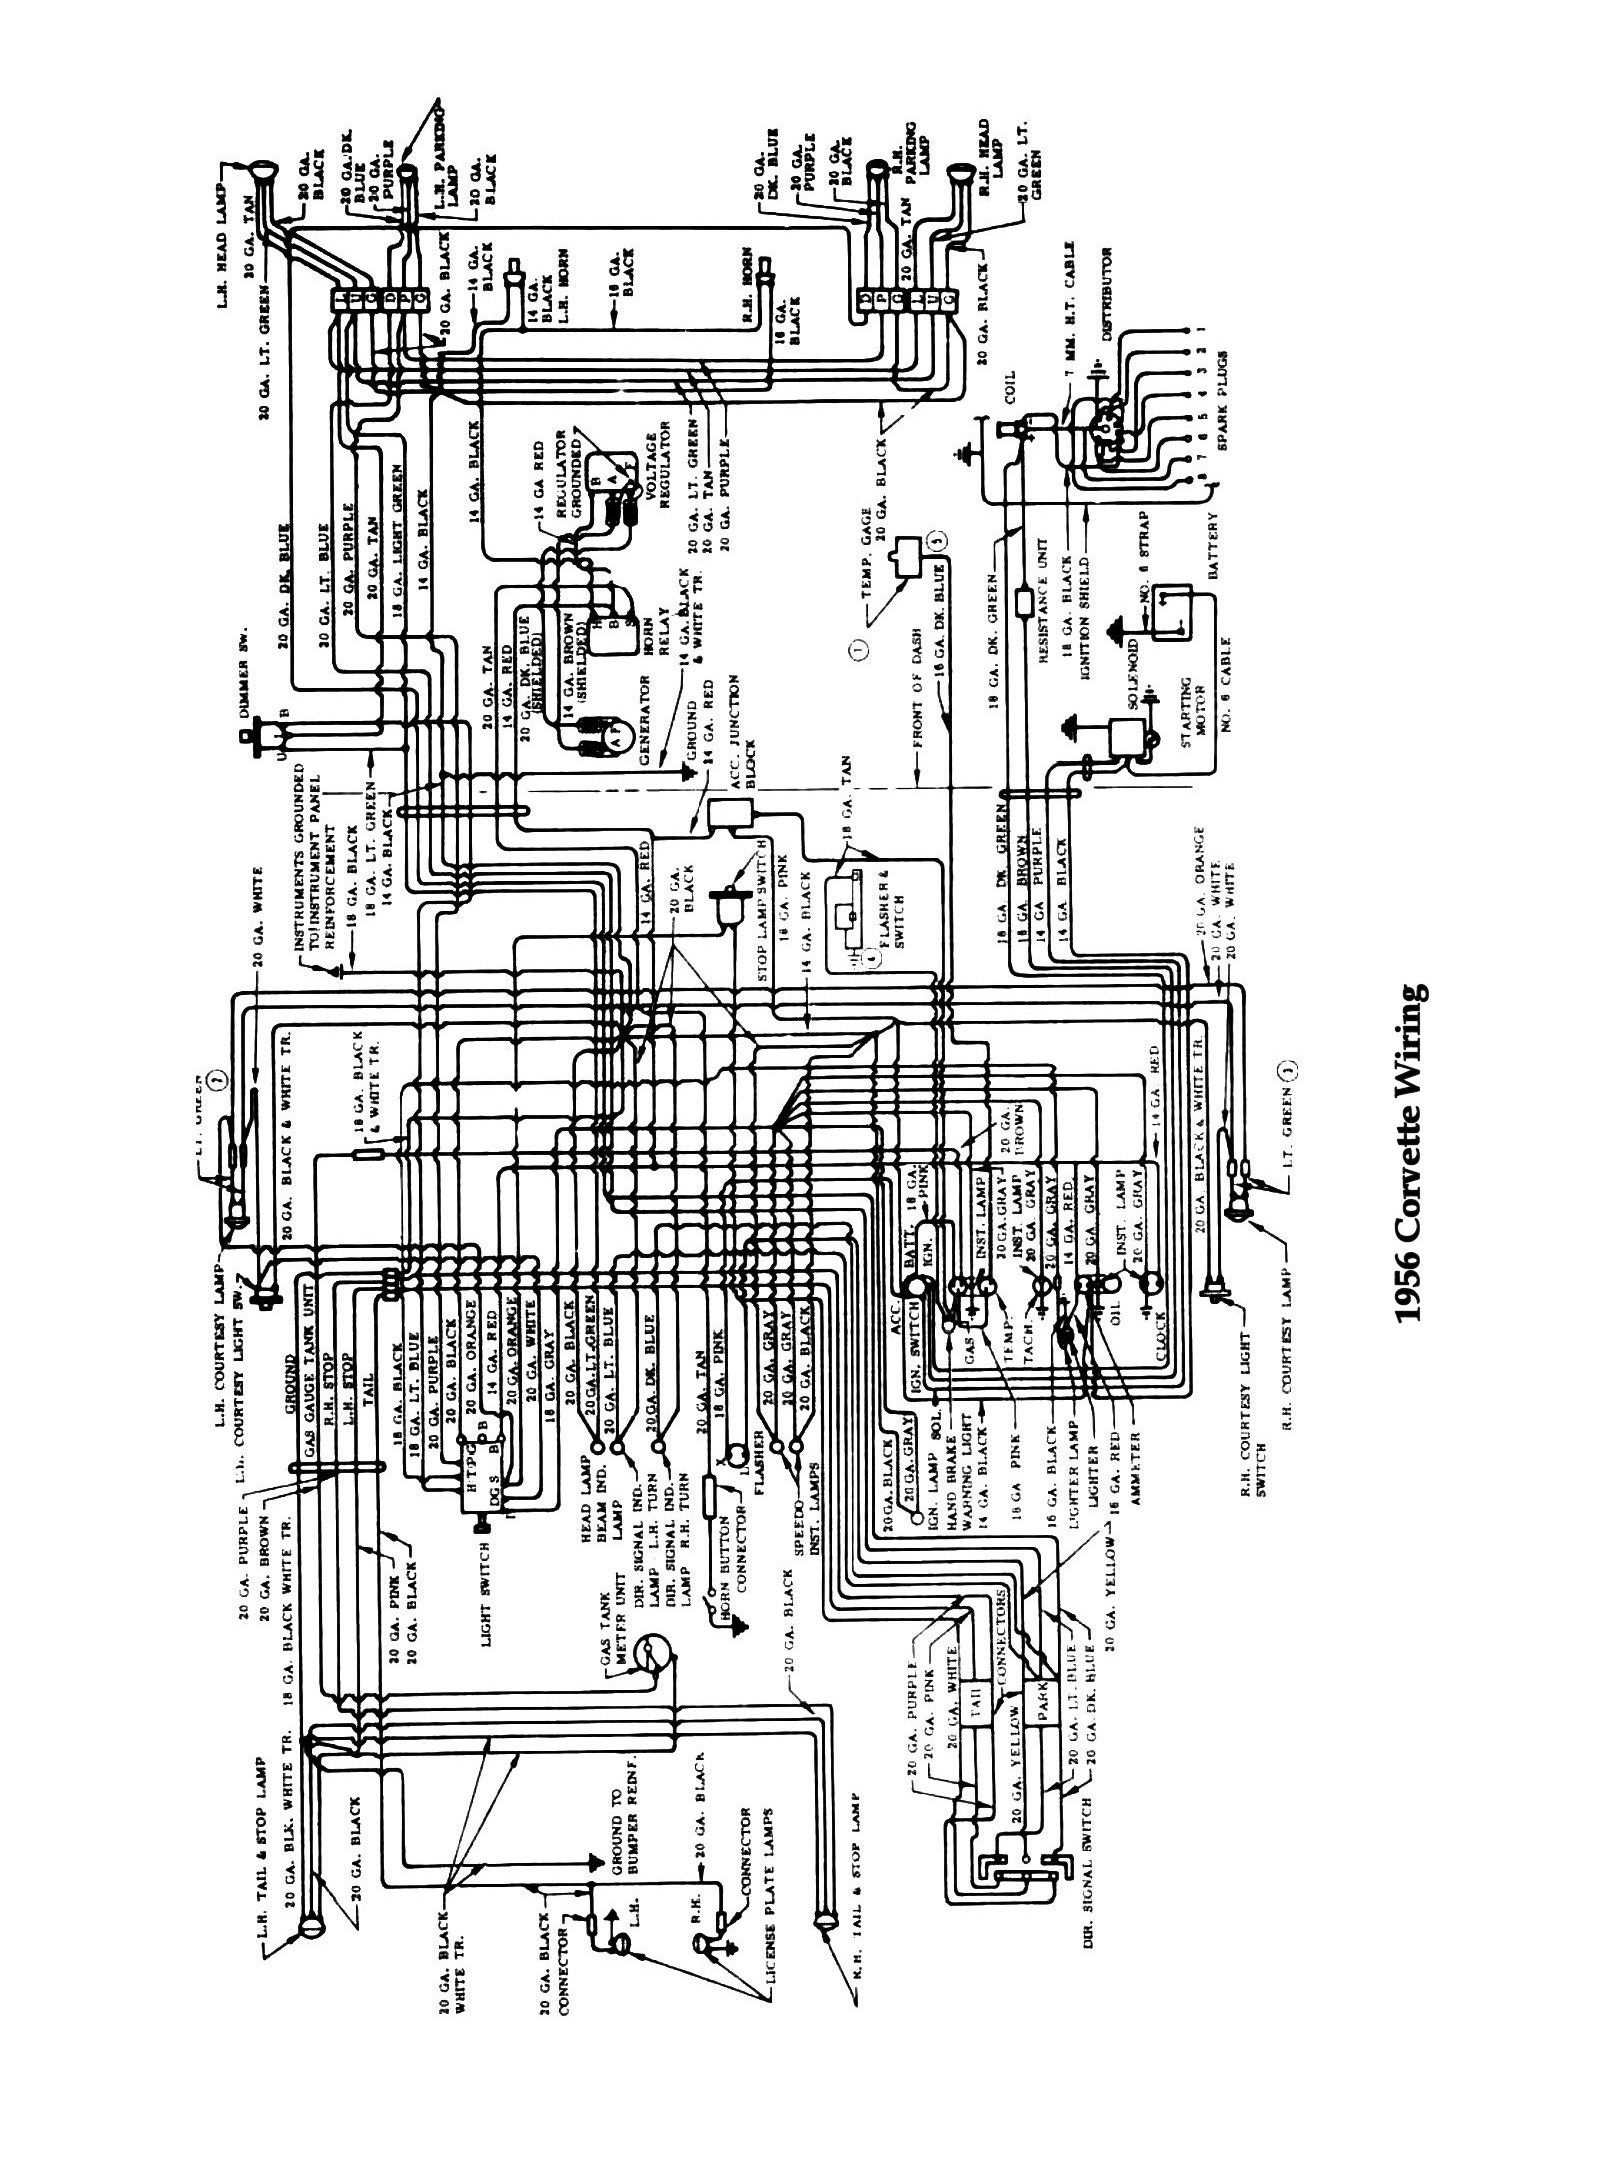 1954 Corvette Wiring Diagram